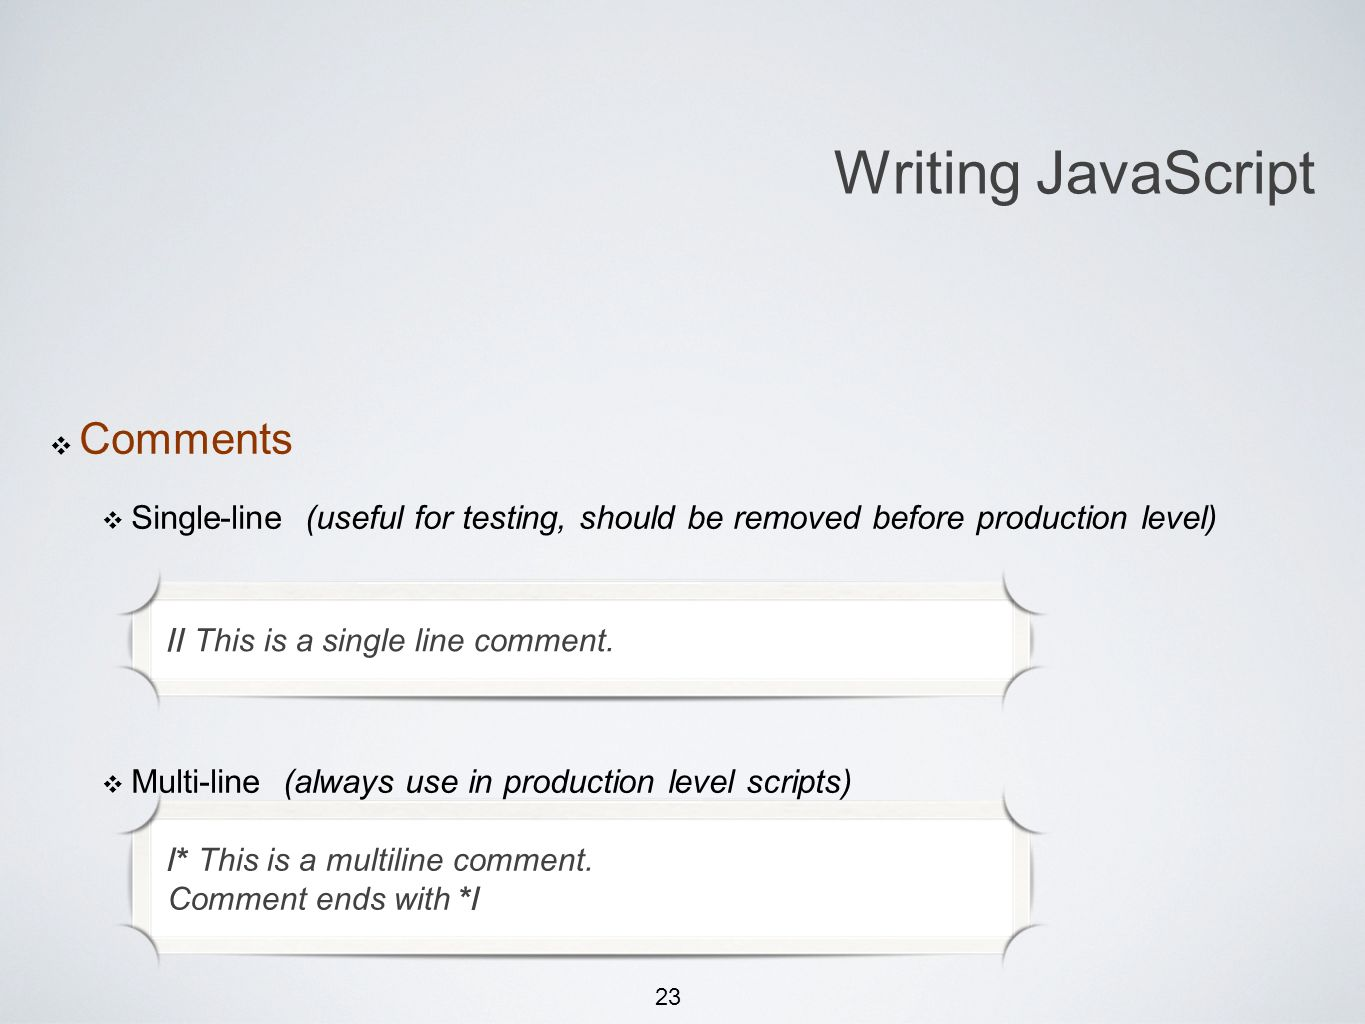 23 Comments Single-line (useful for testing, should be removed before production level) Multi-line (always use in production level scripts) Writing JavaScript // This is a single line comment.